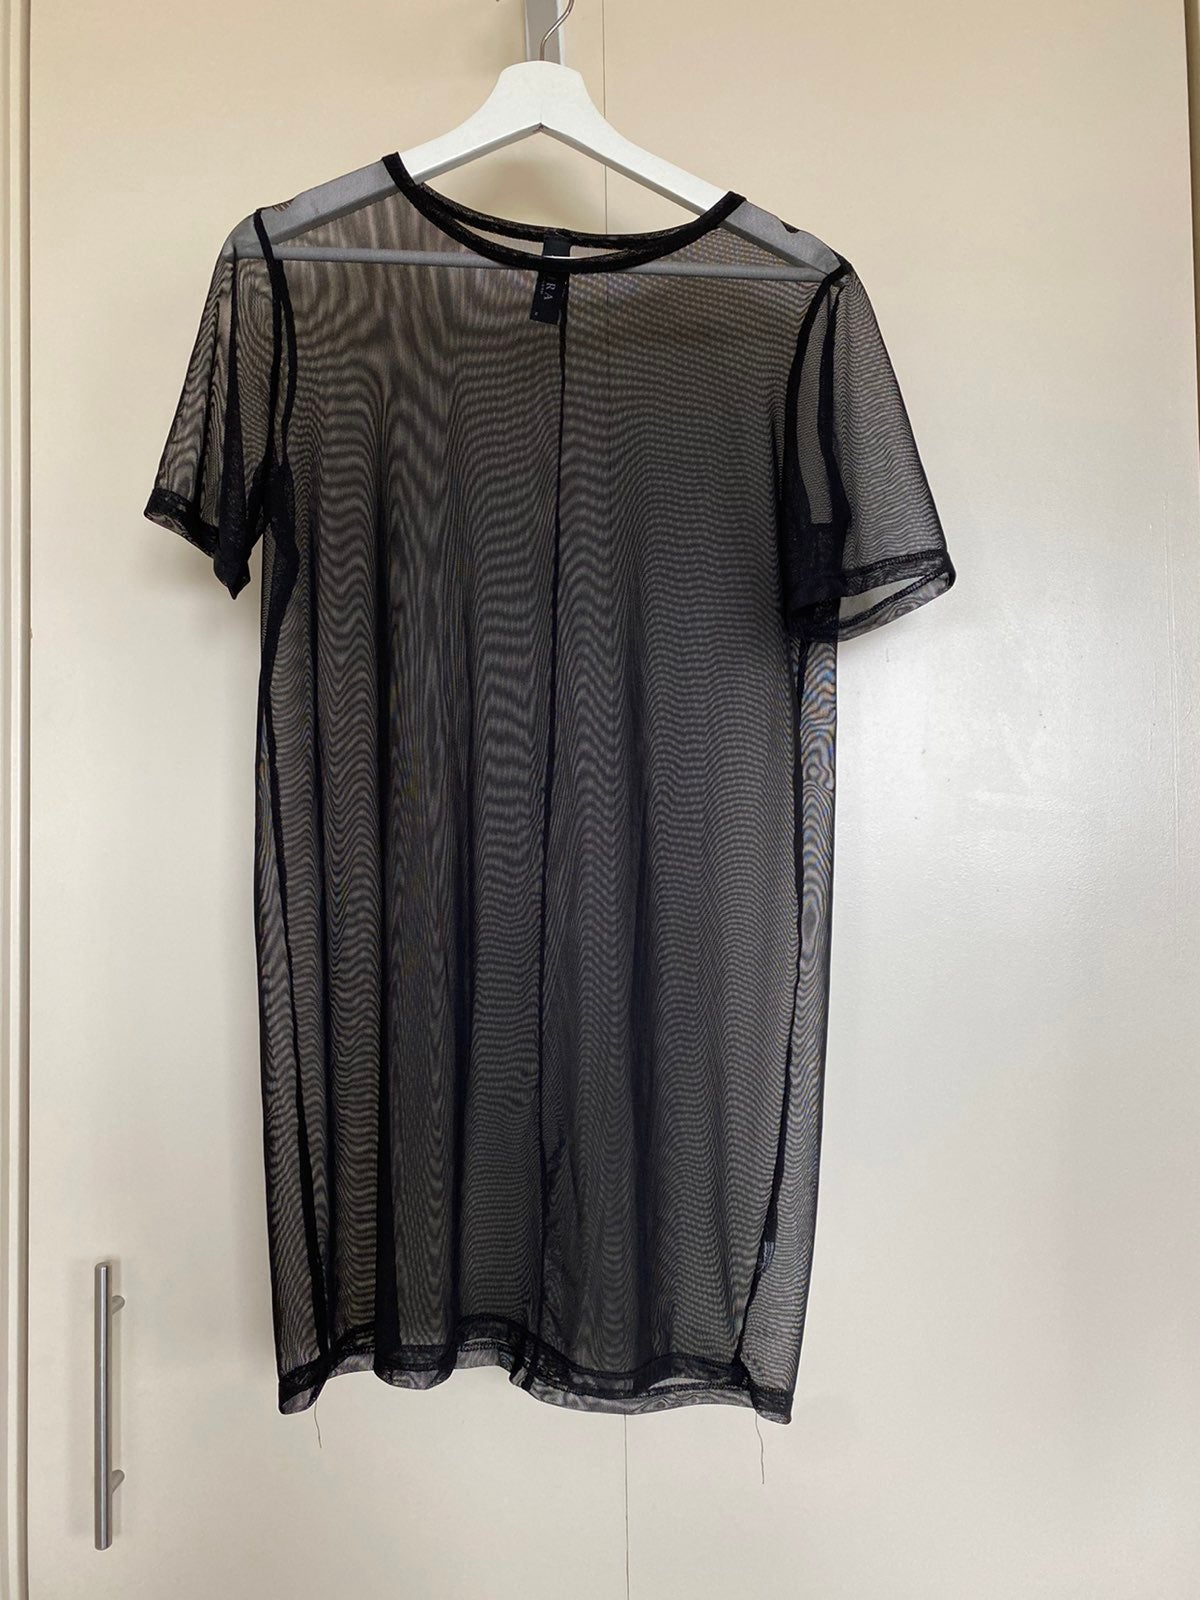 Mesh (sheer) tshirt dress